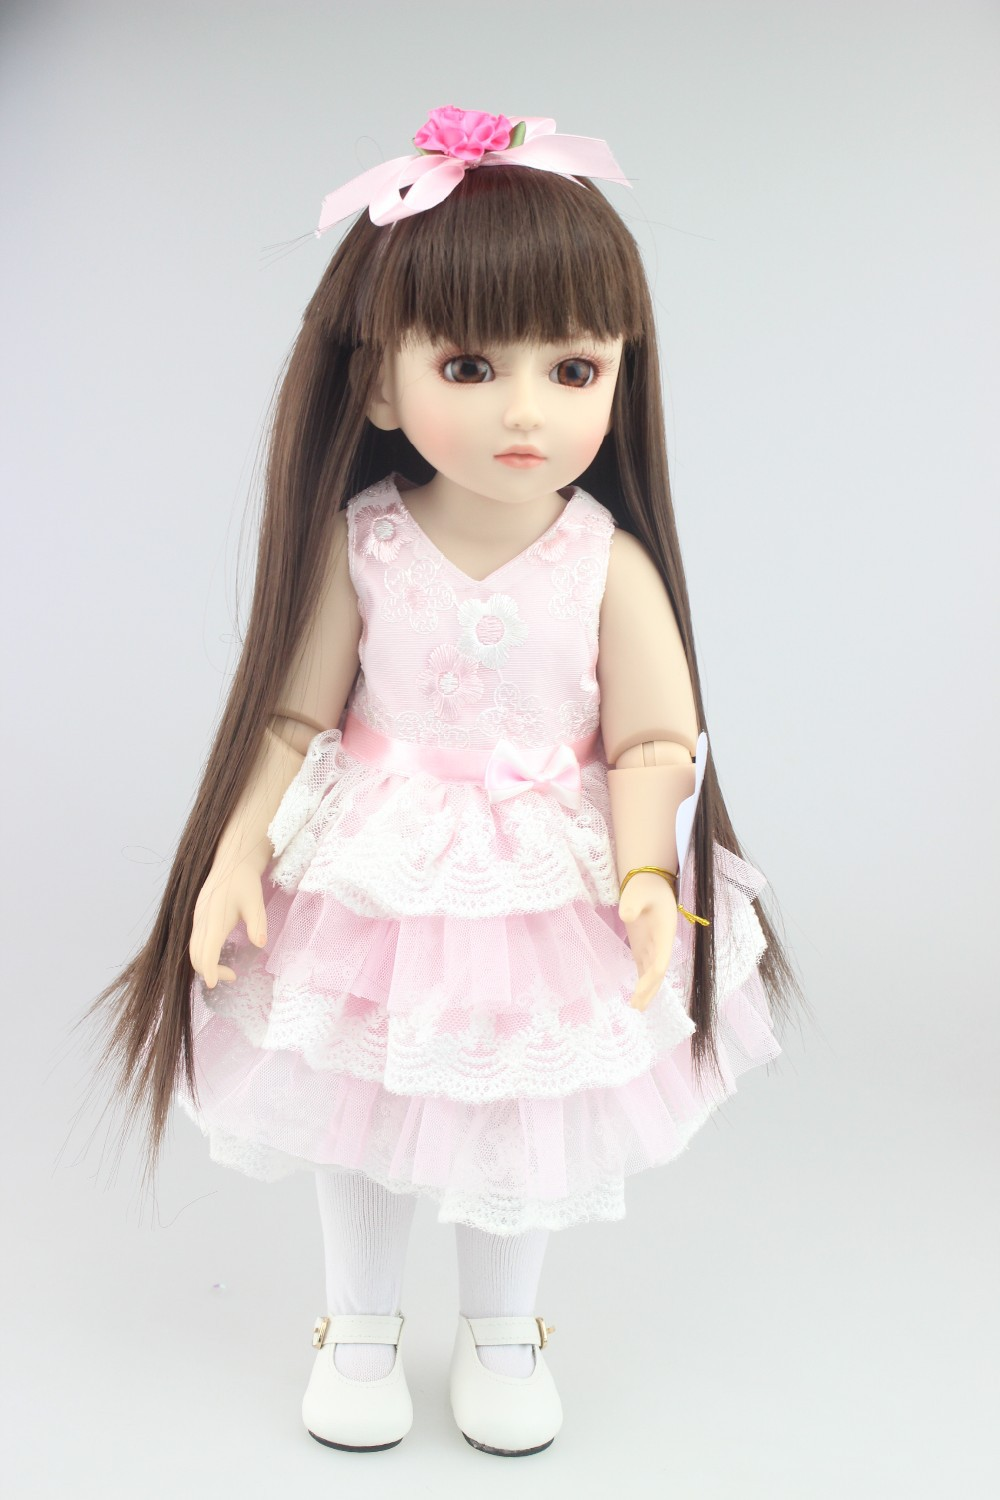 NEW Design Beautiful SD/BJD doll  handmade doll high quailty popular gift for your children hot newest 18 inch handmade vinyl doll bjd doll with dress beautiful princess doll toy for children christmas gift